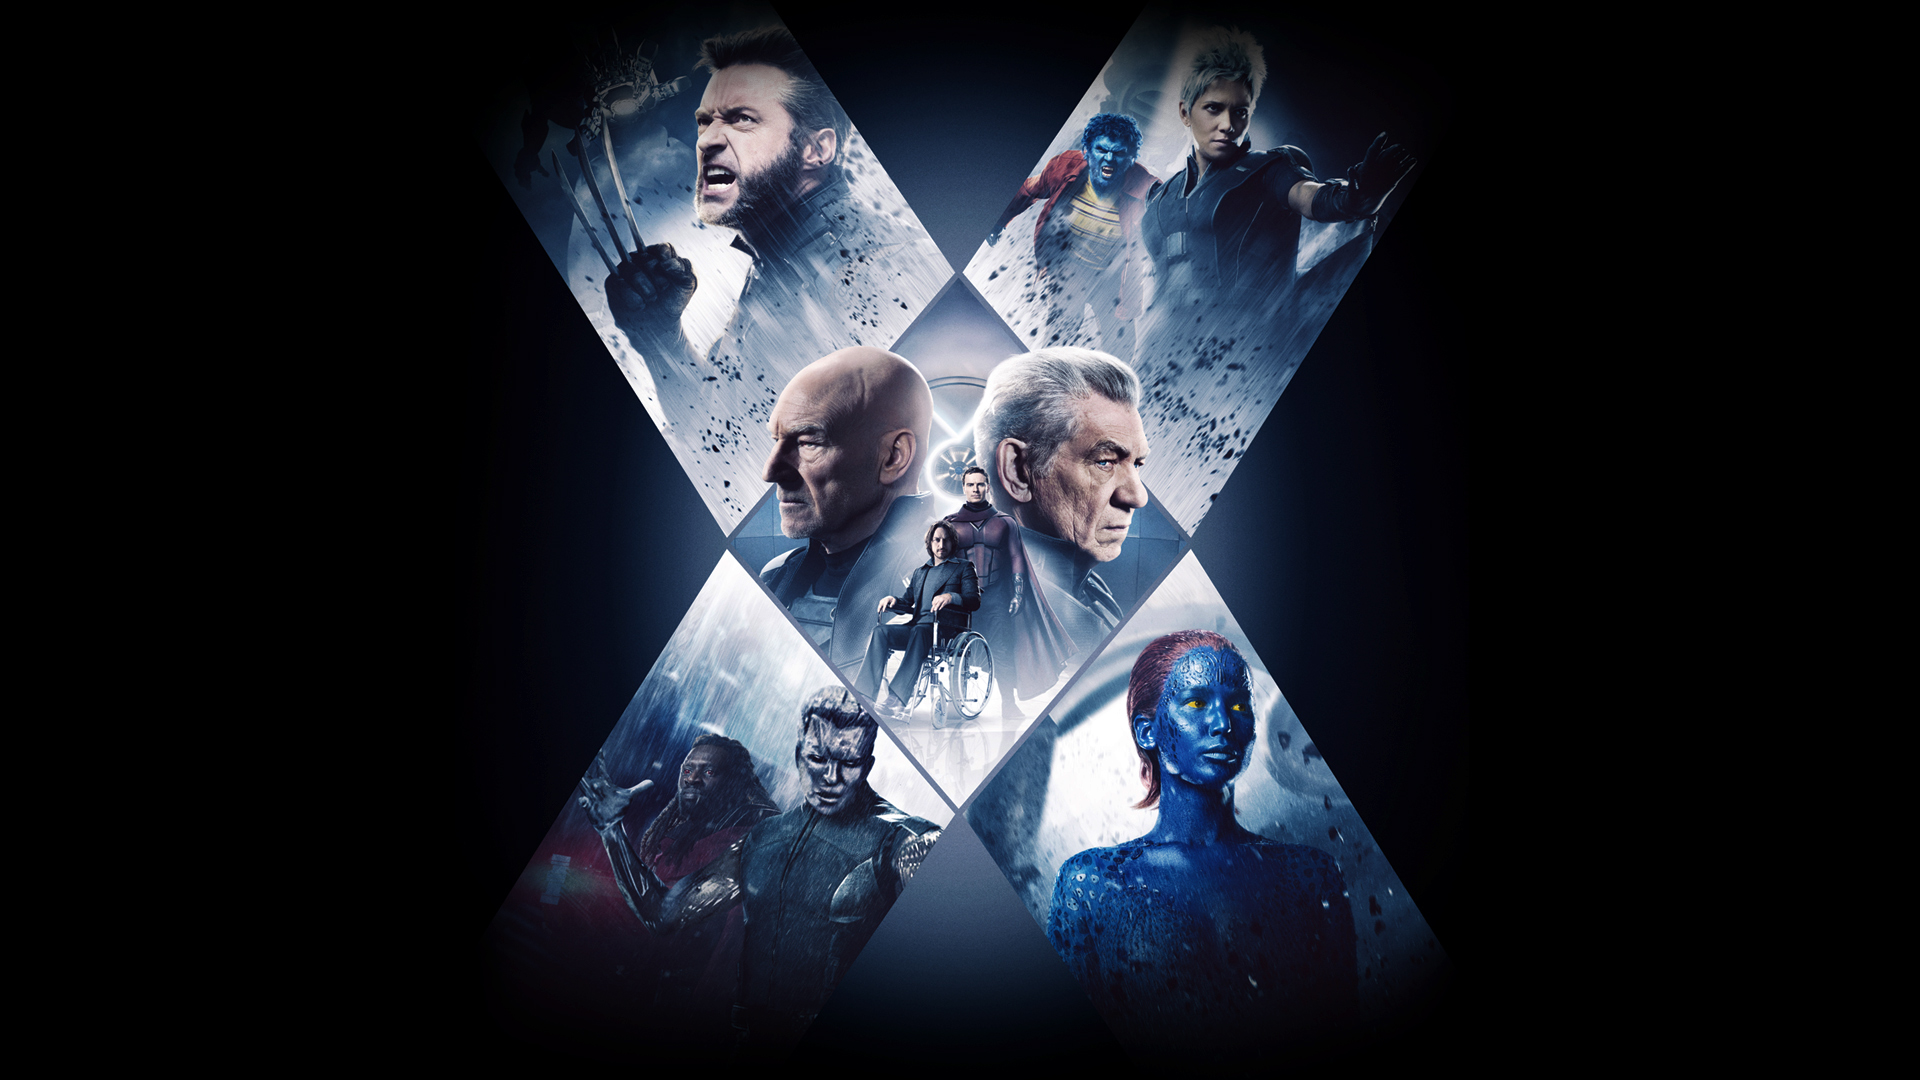 Free Download X Men 2014 Days Of Future Past Wallpaper Hd